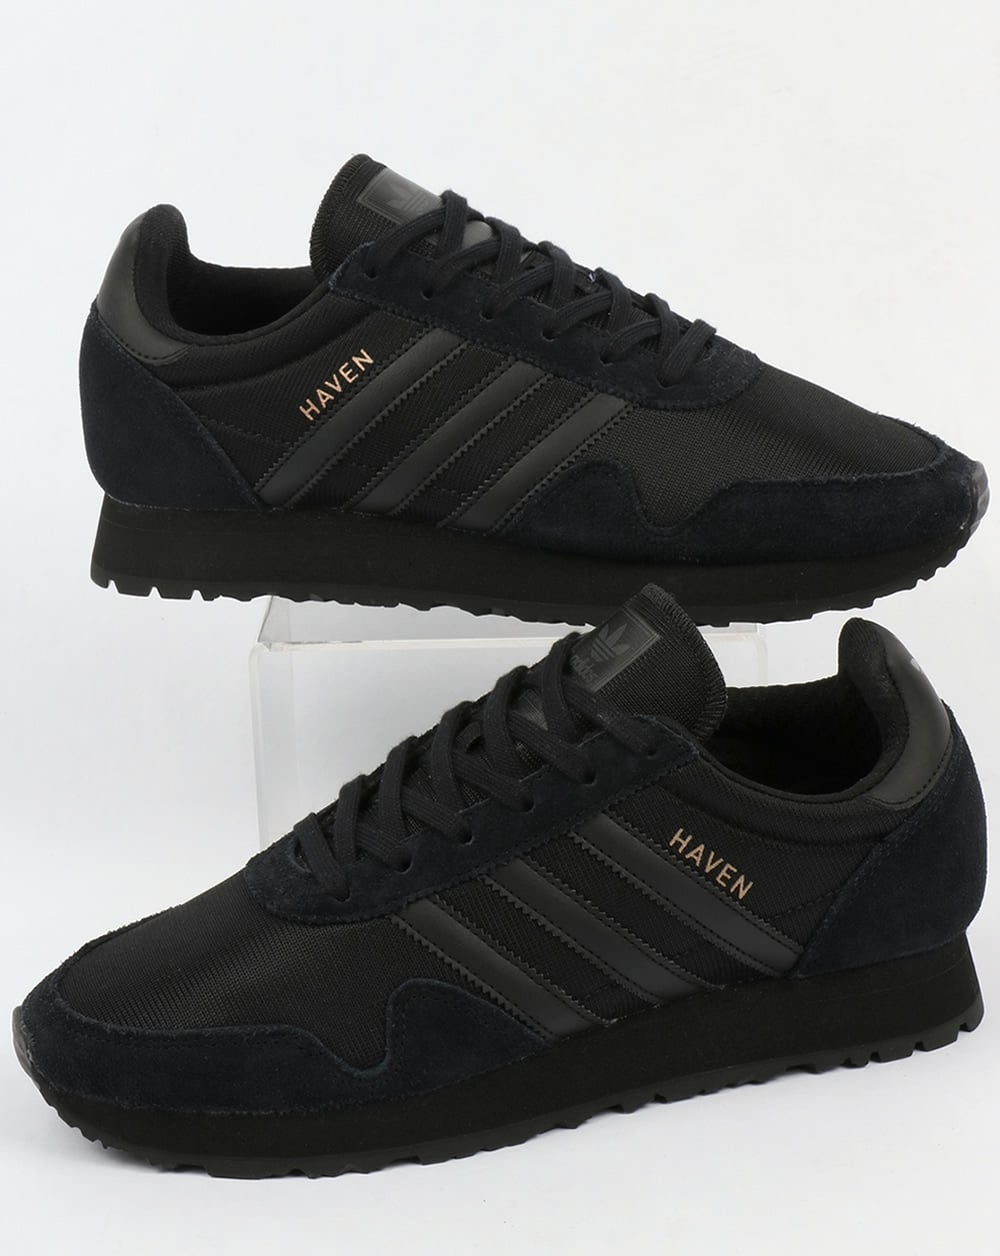 Adidas Haven Trainers Black